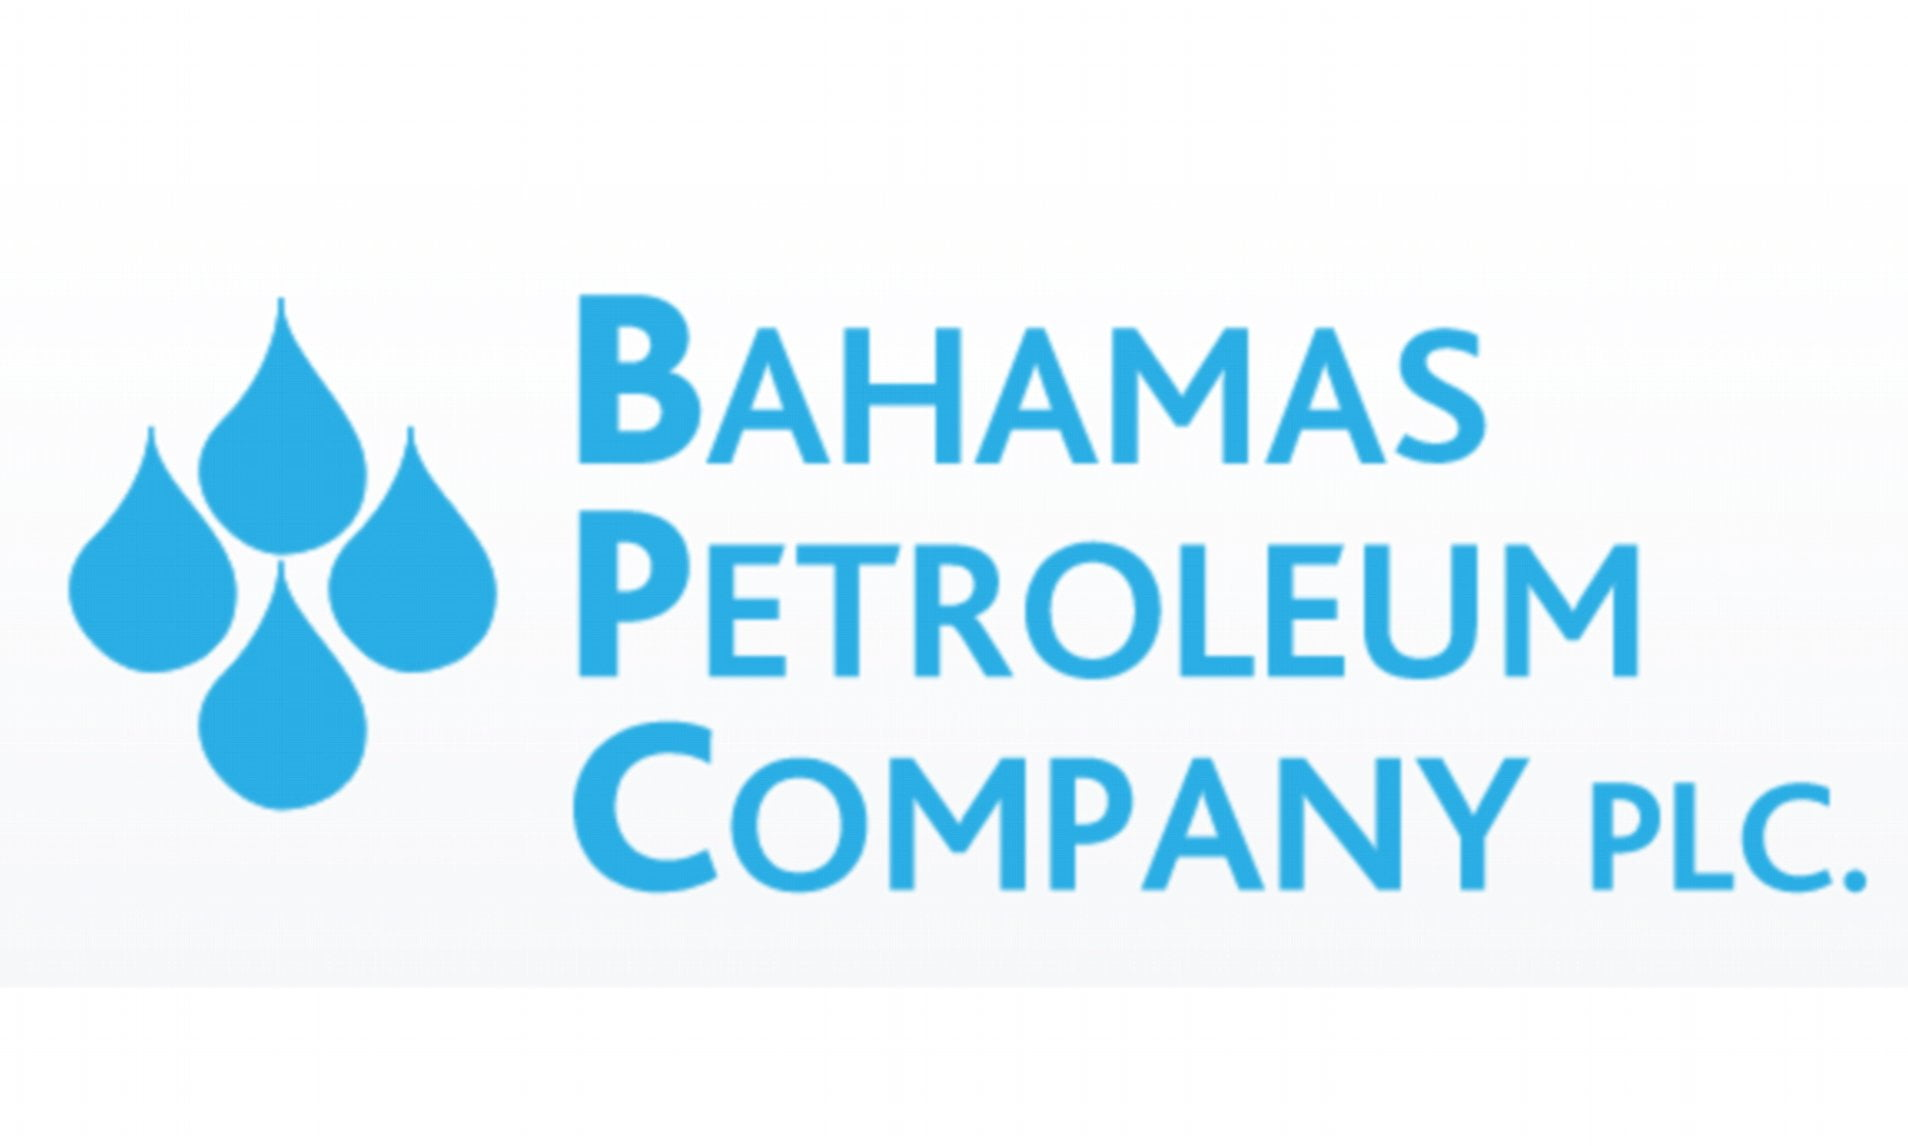 Bahamas Petroleum Company signs service agreement with Baker Hughes GE